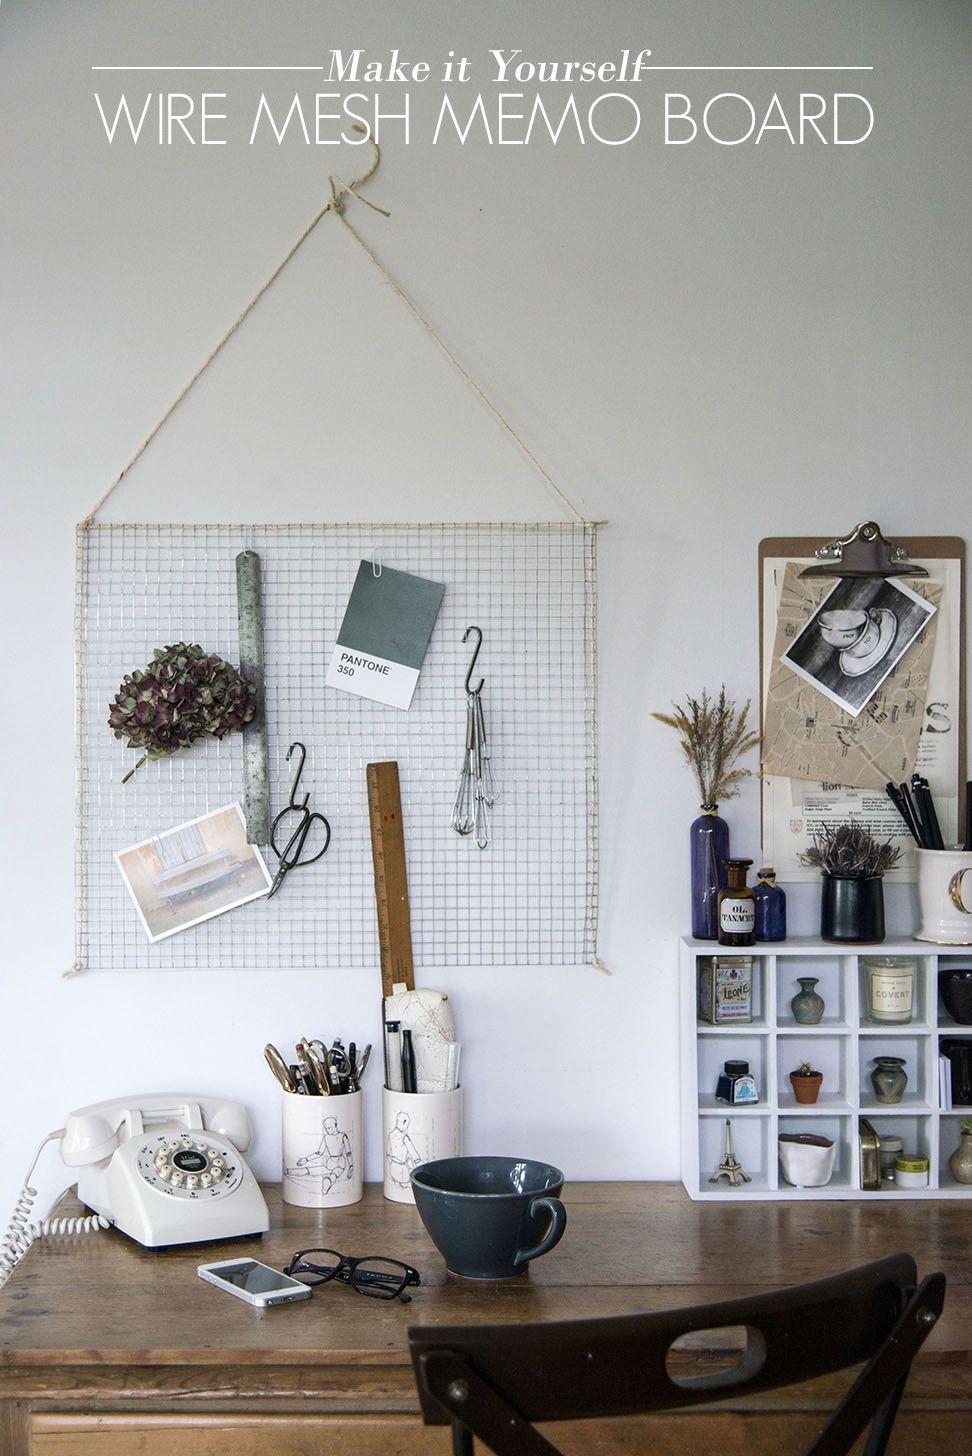 DIY Wire Mesh Memo Board | AO at Home Blog | DIY | Pinterest | Wire ...